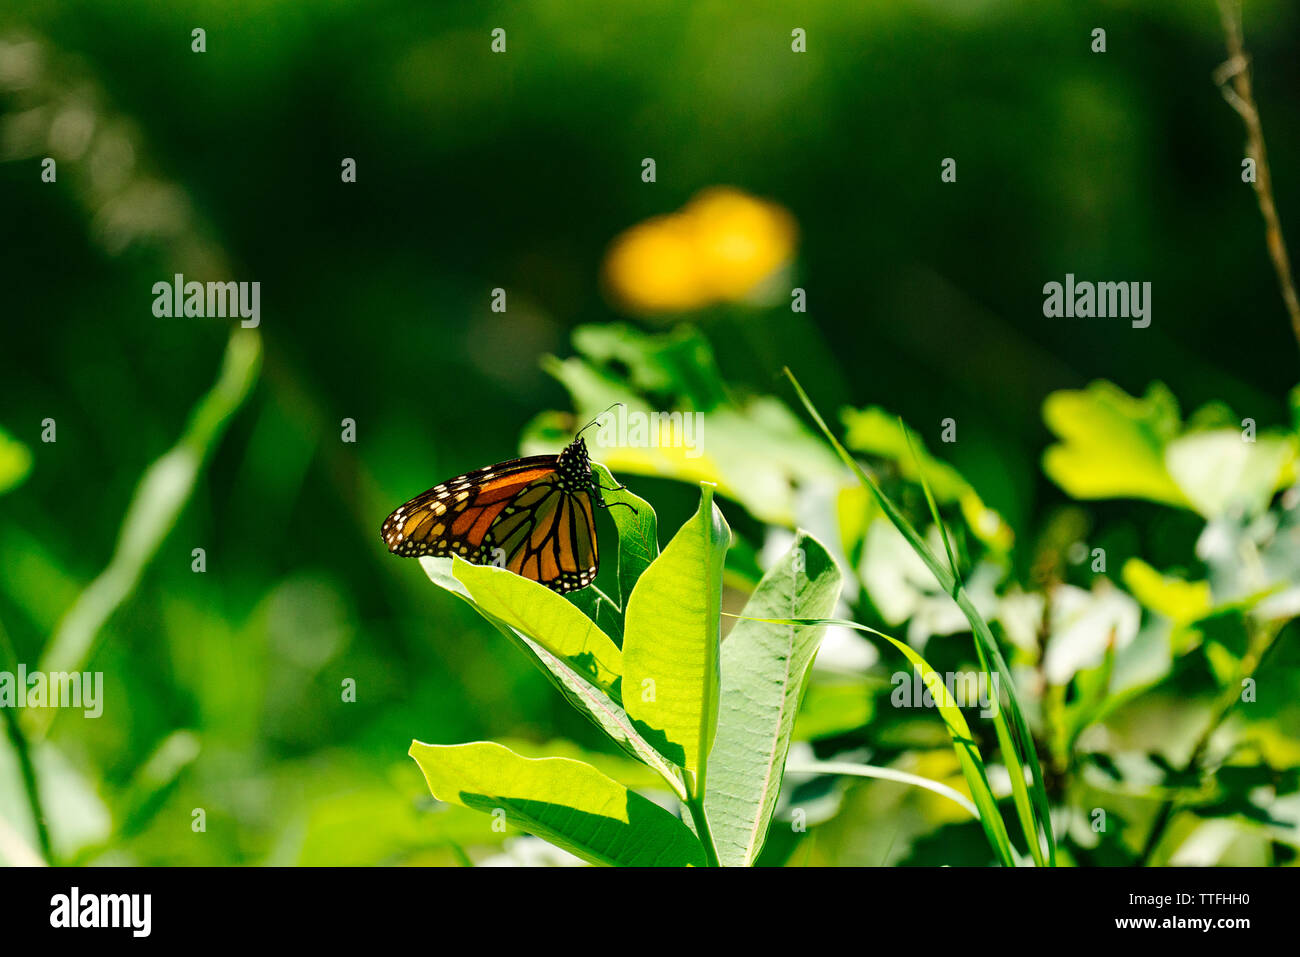 Side view of a Monarch Butterfly on a milkweed leaf in a field - Stock Image